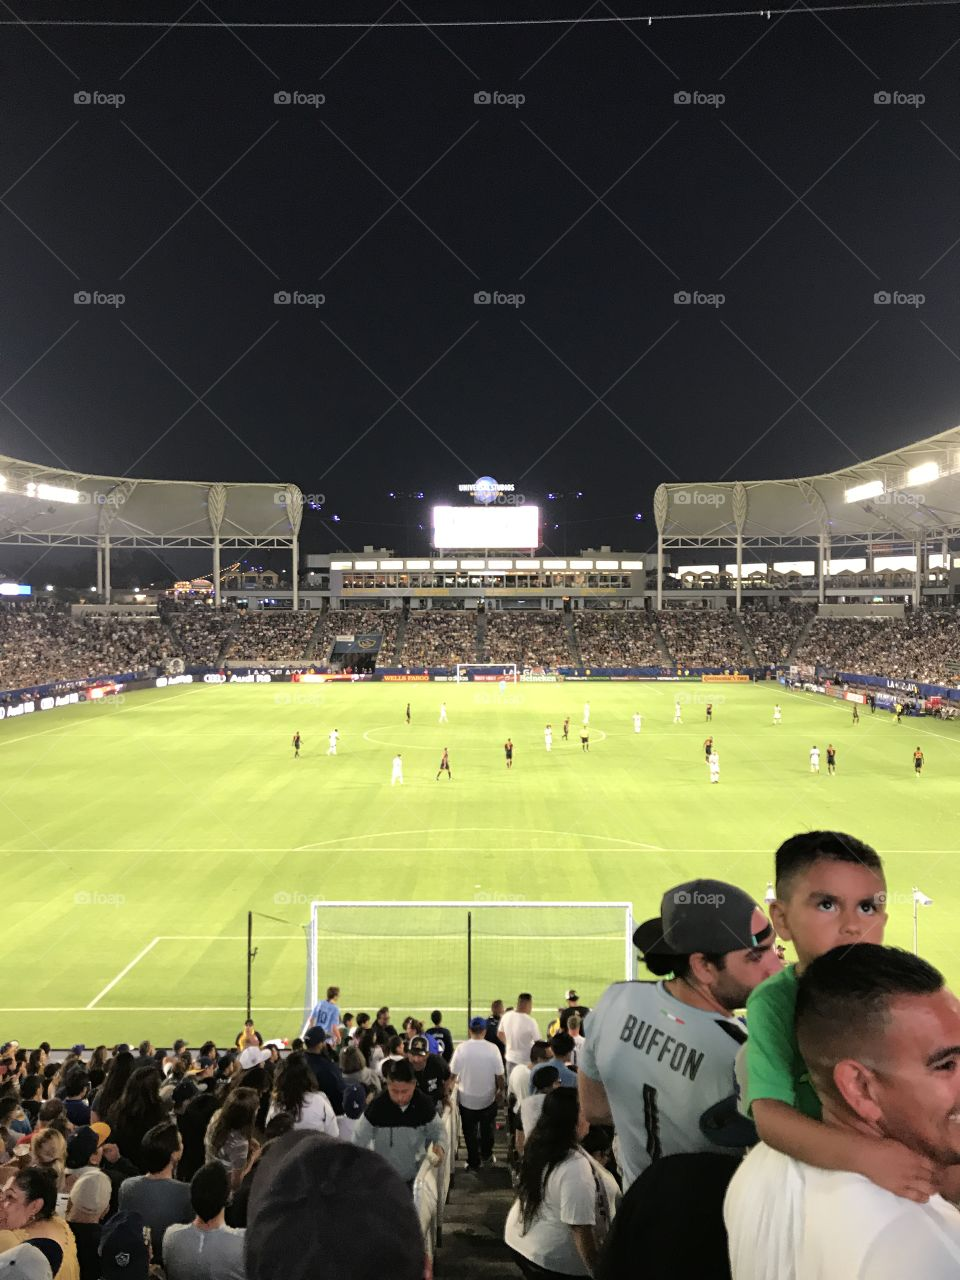 View from the Los Angeles Galaxy supporters section behind the goal at Stub Hub Center in Carson, CA.